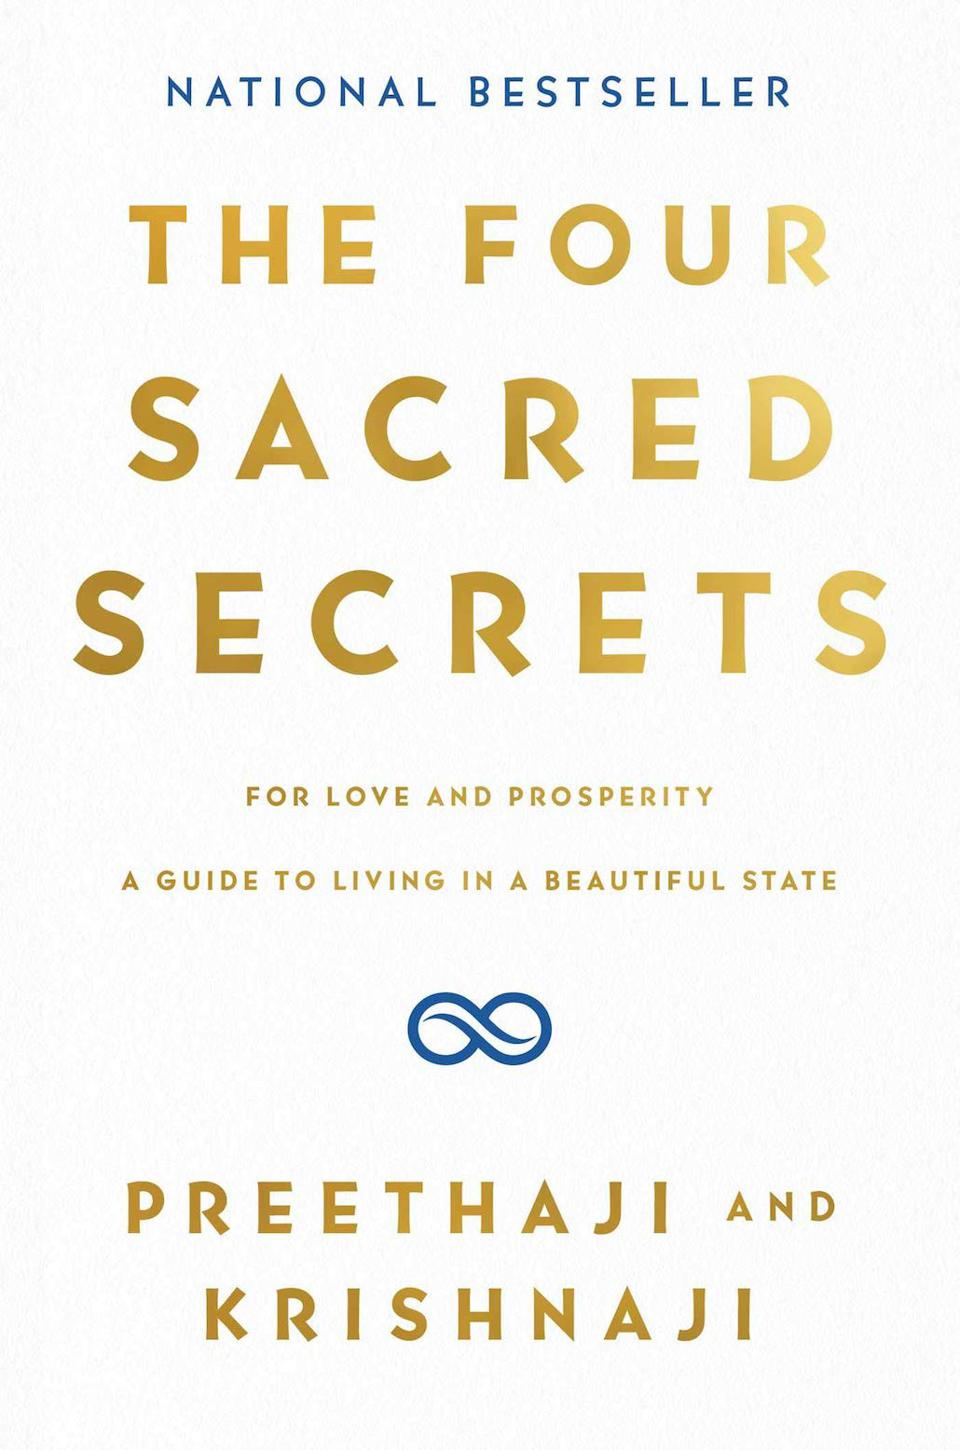 The Four Sacred Secrets: For Love and Prosperity, A Guide to Living in a Beautiful State by Preethaji and Krishnaji